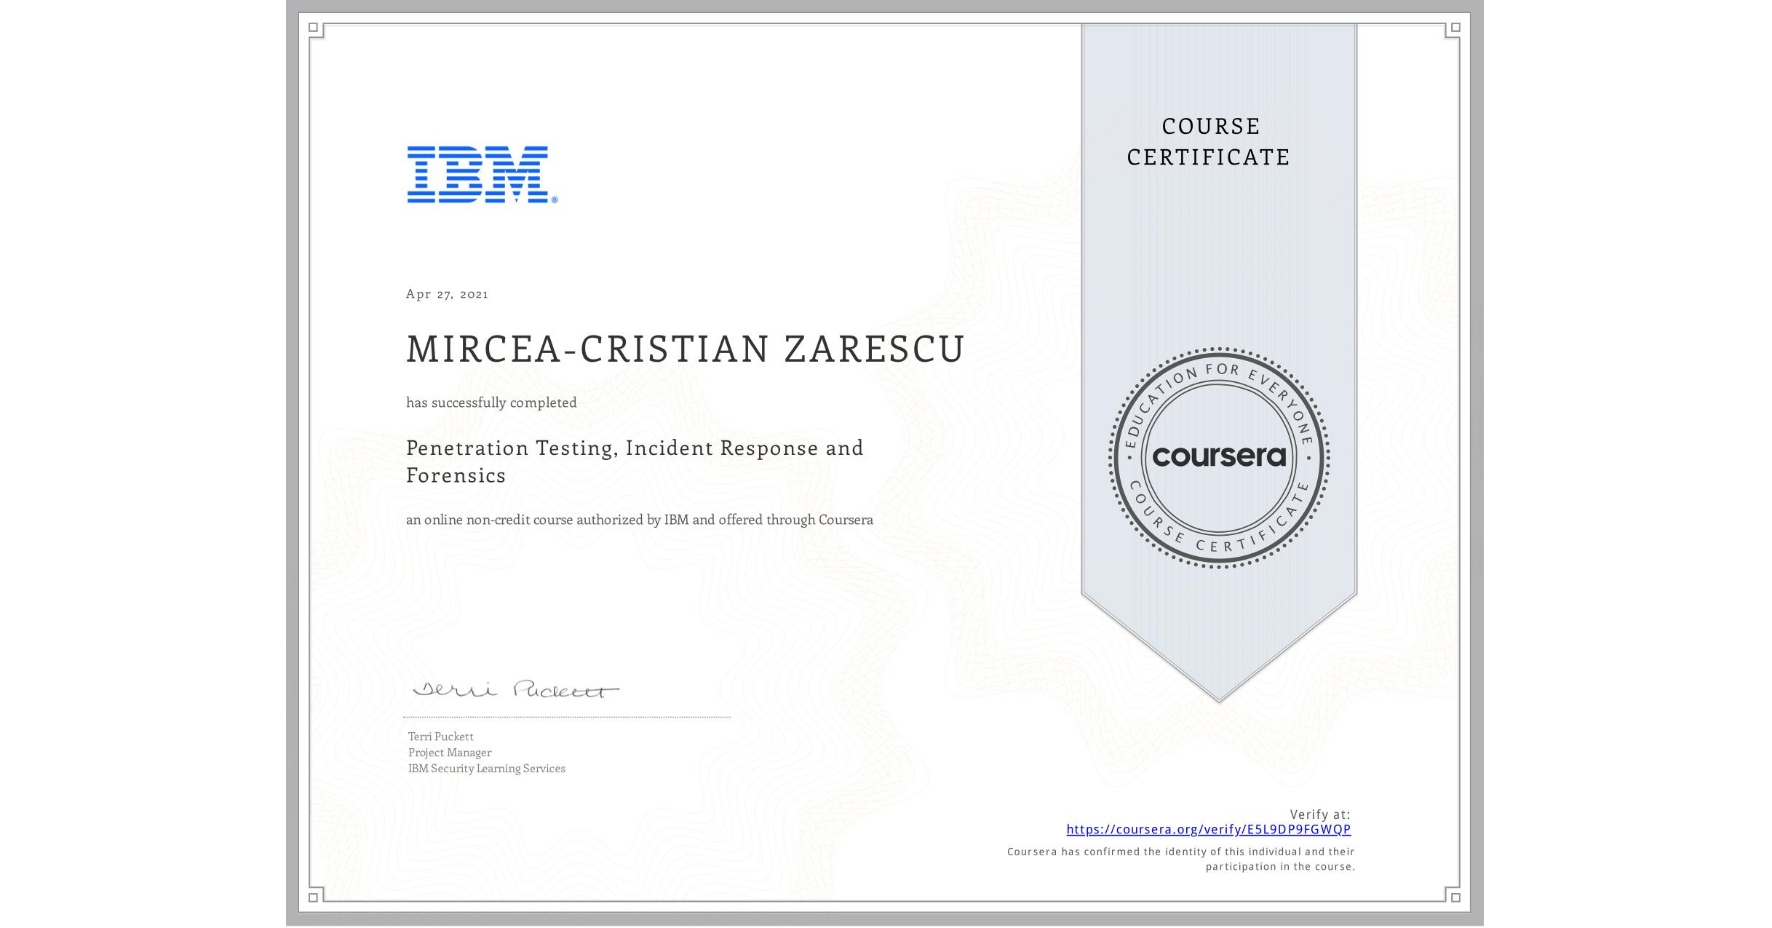 View certificate for MIRCEA-CRISTIAN ZARESCU, Penetration Testing, Incident Response and Forensics, an online non-credit course authorized by IBM and offered through Coursera